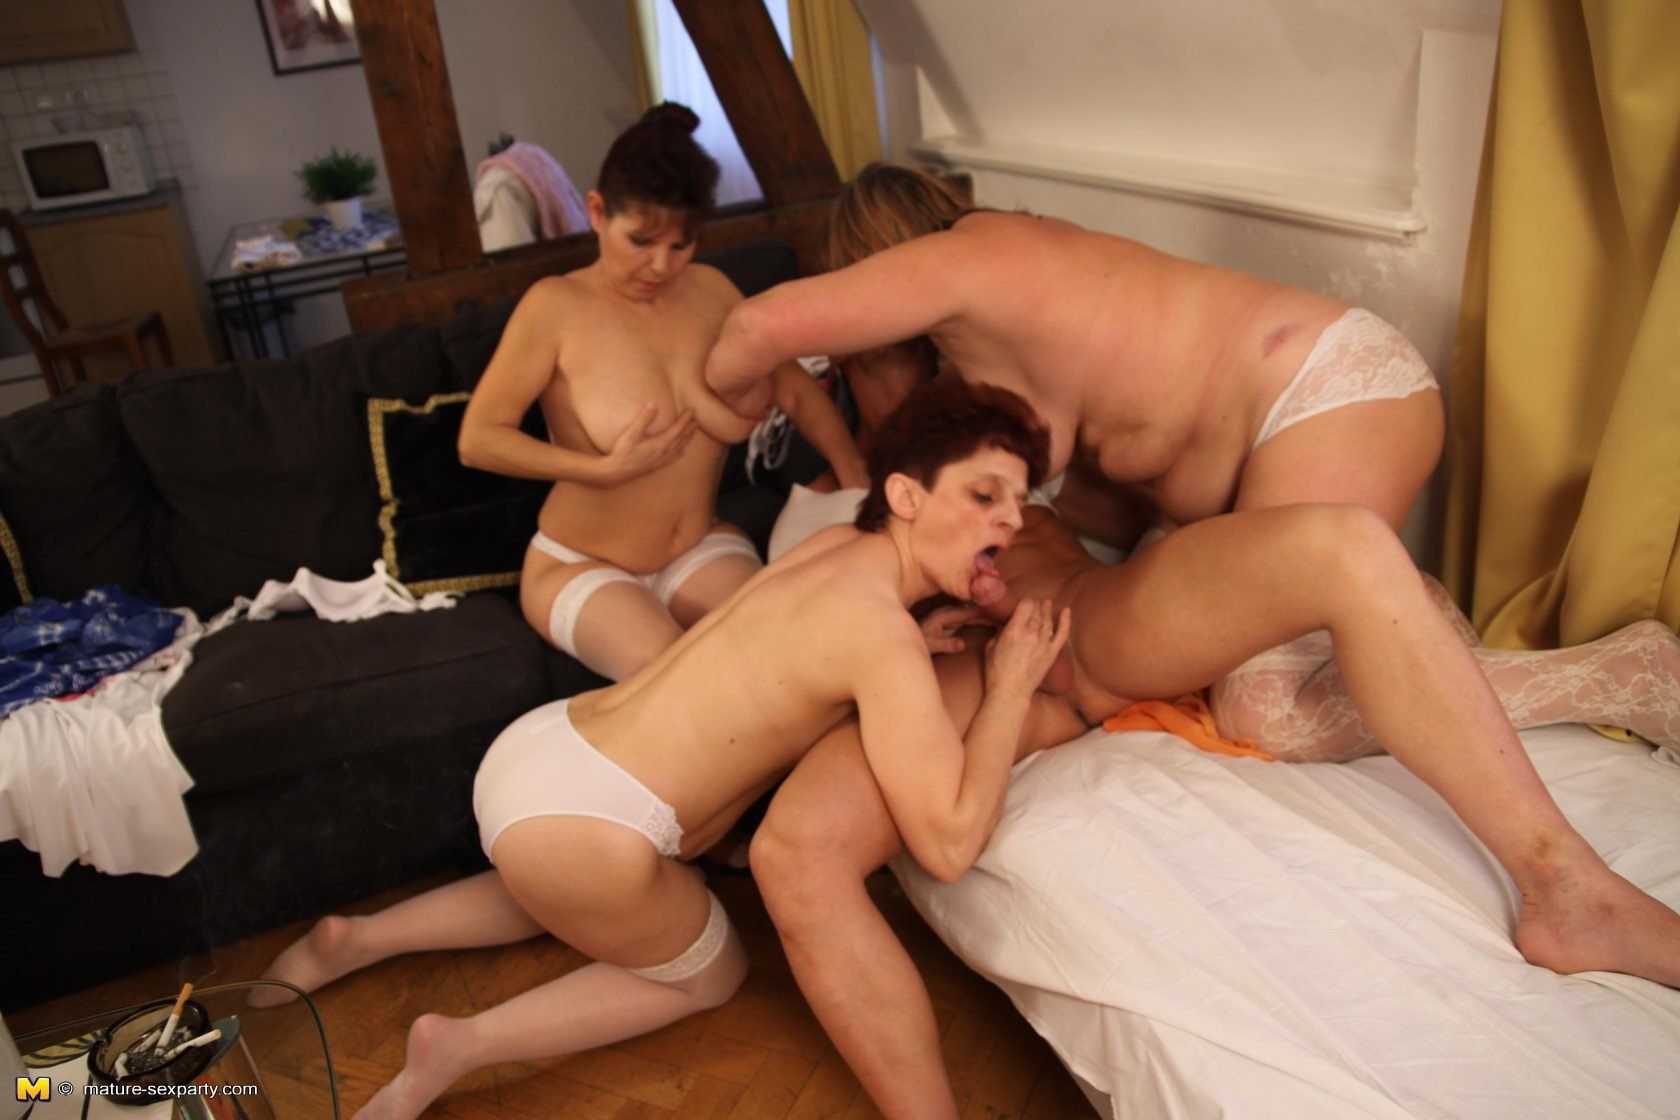 Mature Foursome Sex 93